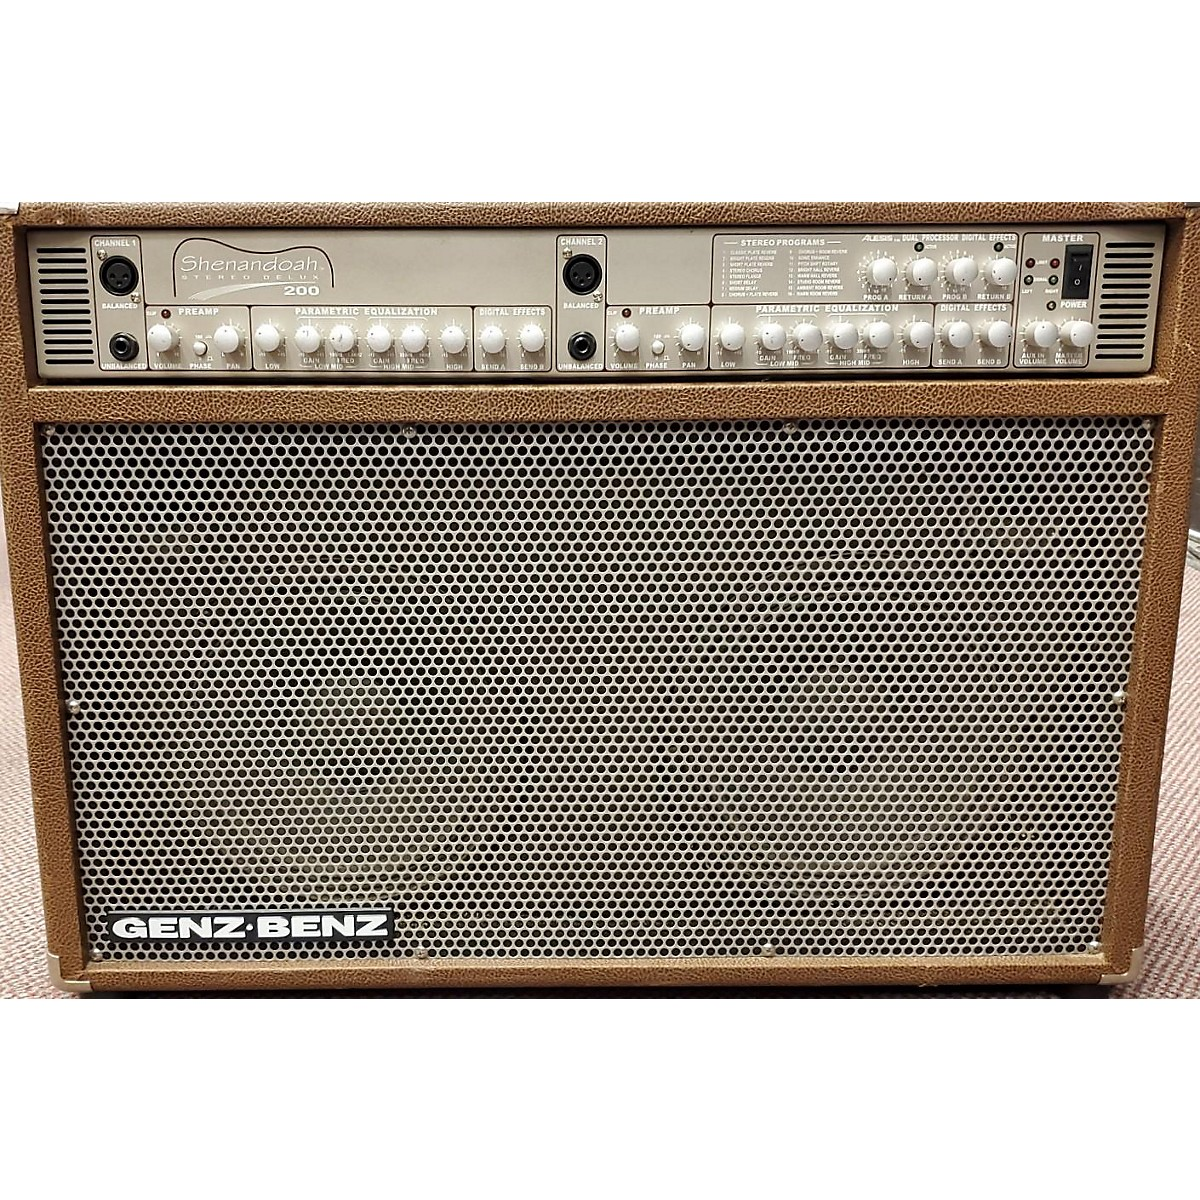 Genz Benz Shenandoah Stereo Deluxe 200 Acoustic Guitar Combo Amp